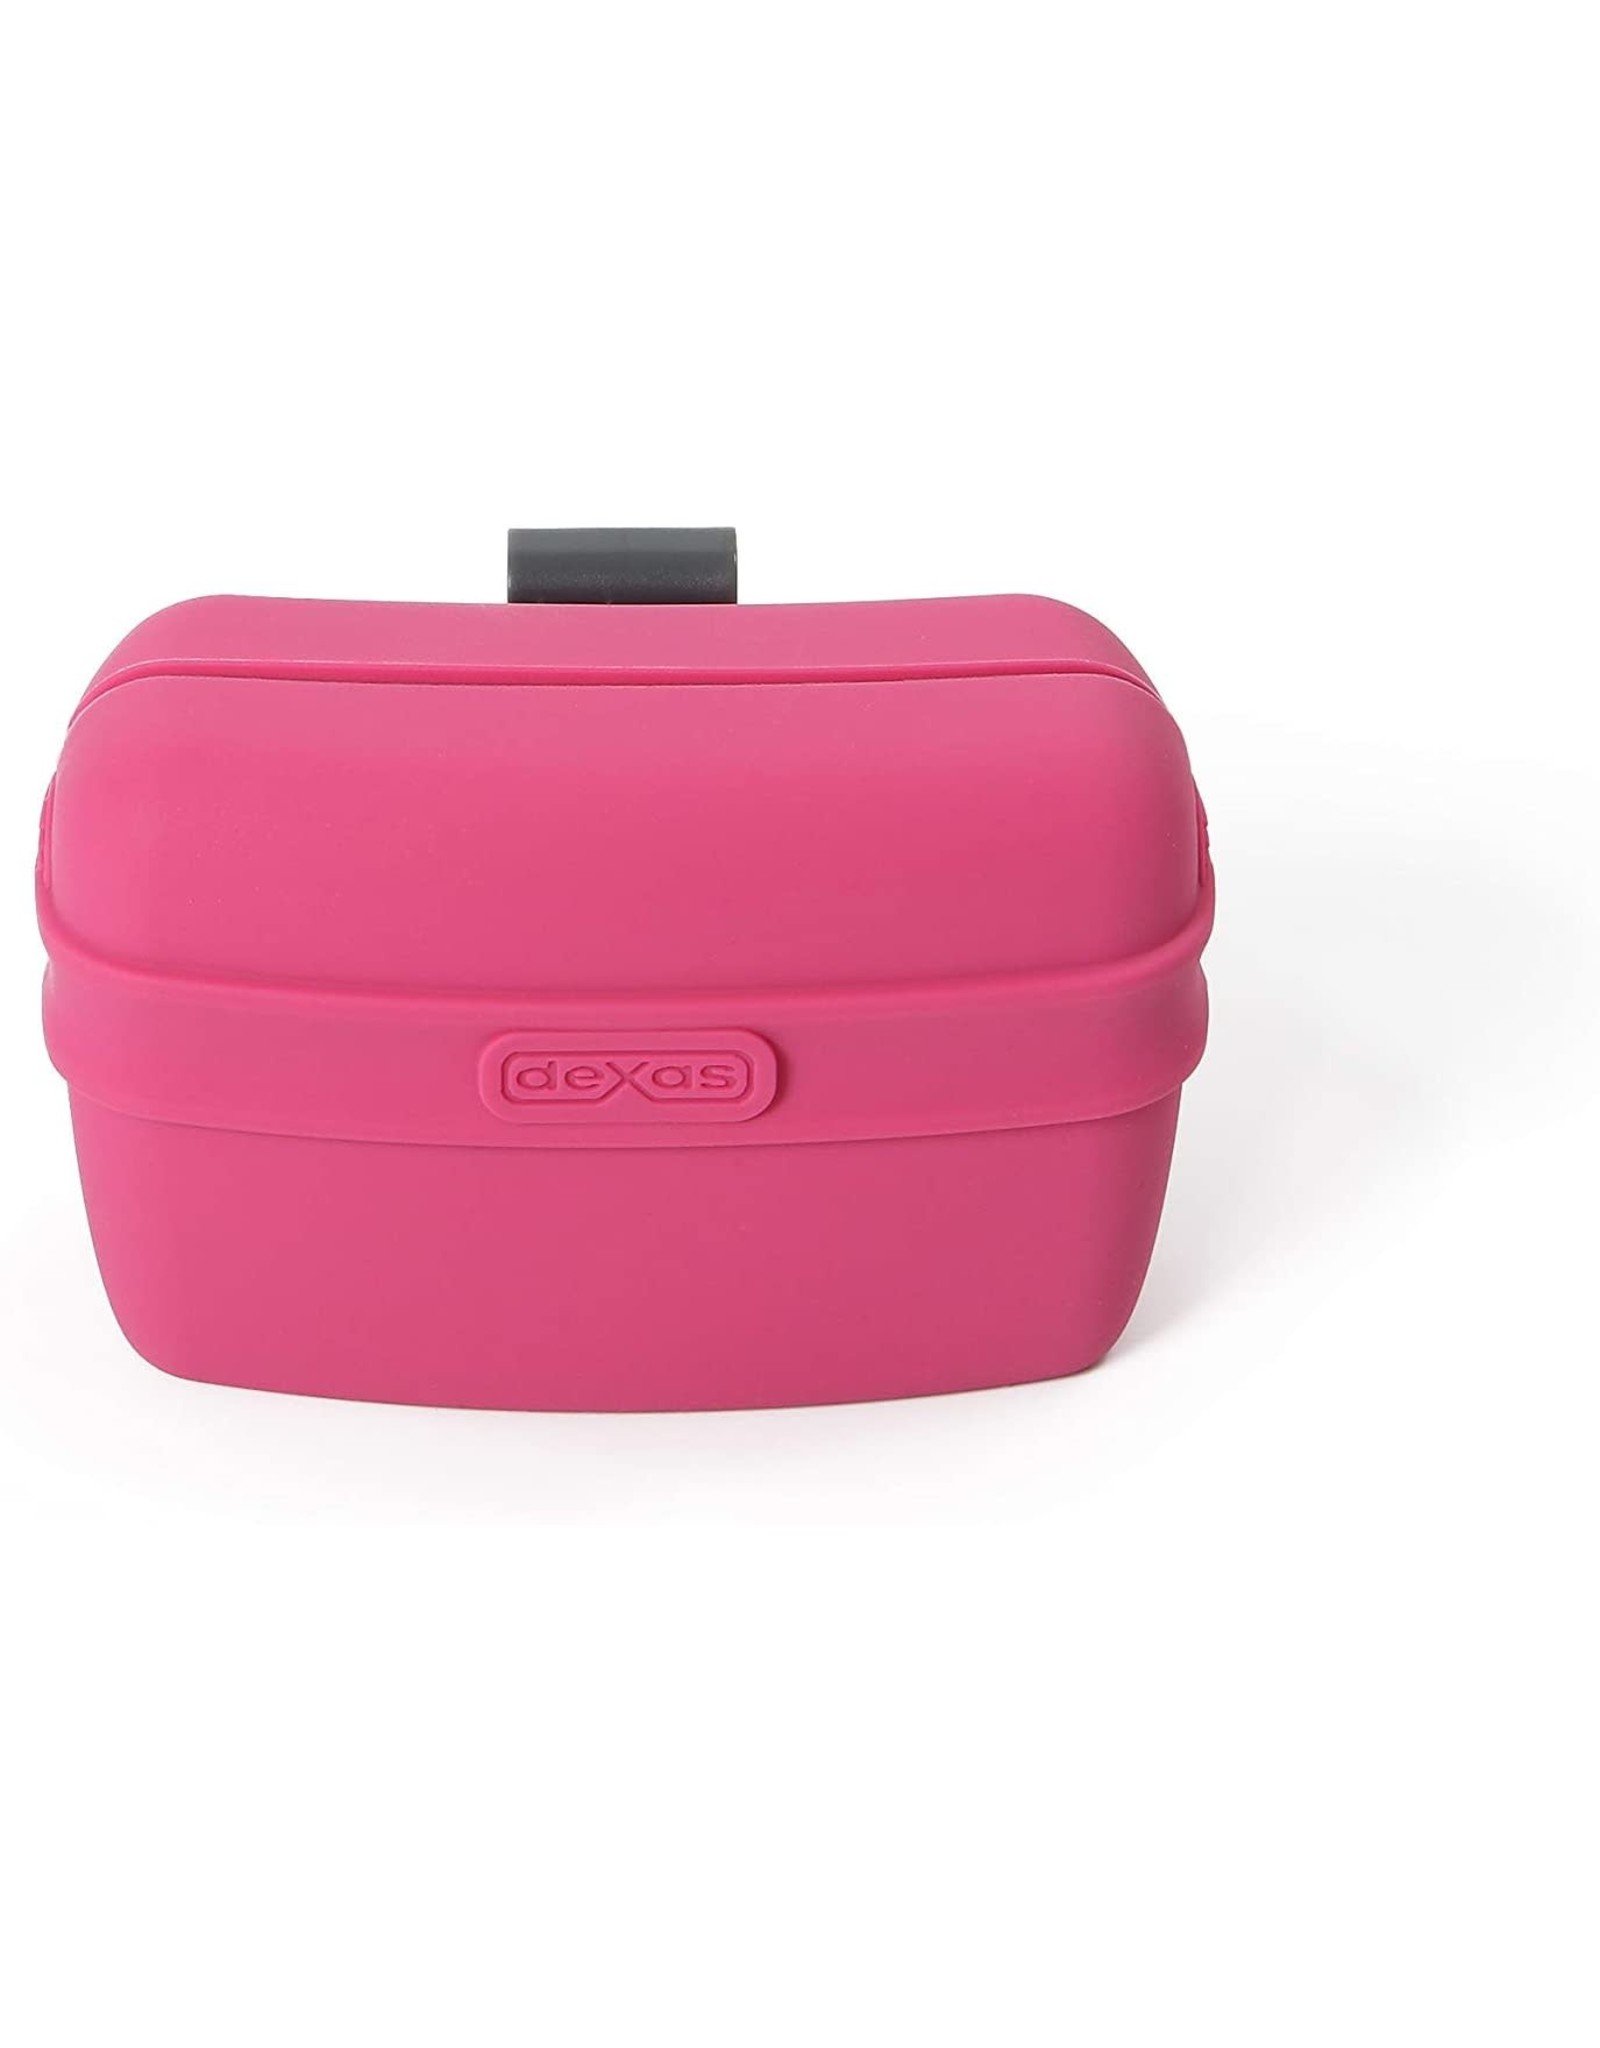 Dexas Pets Pooch Pouch: Pink, os